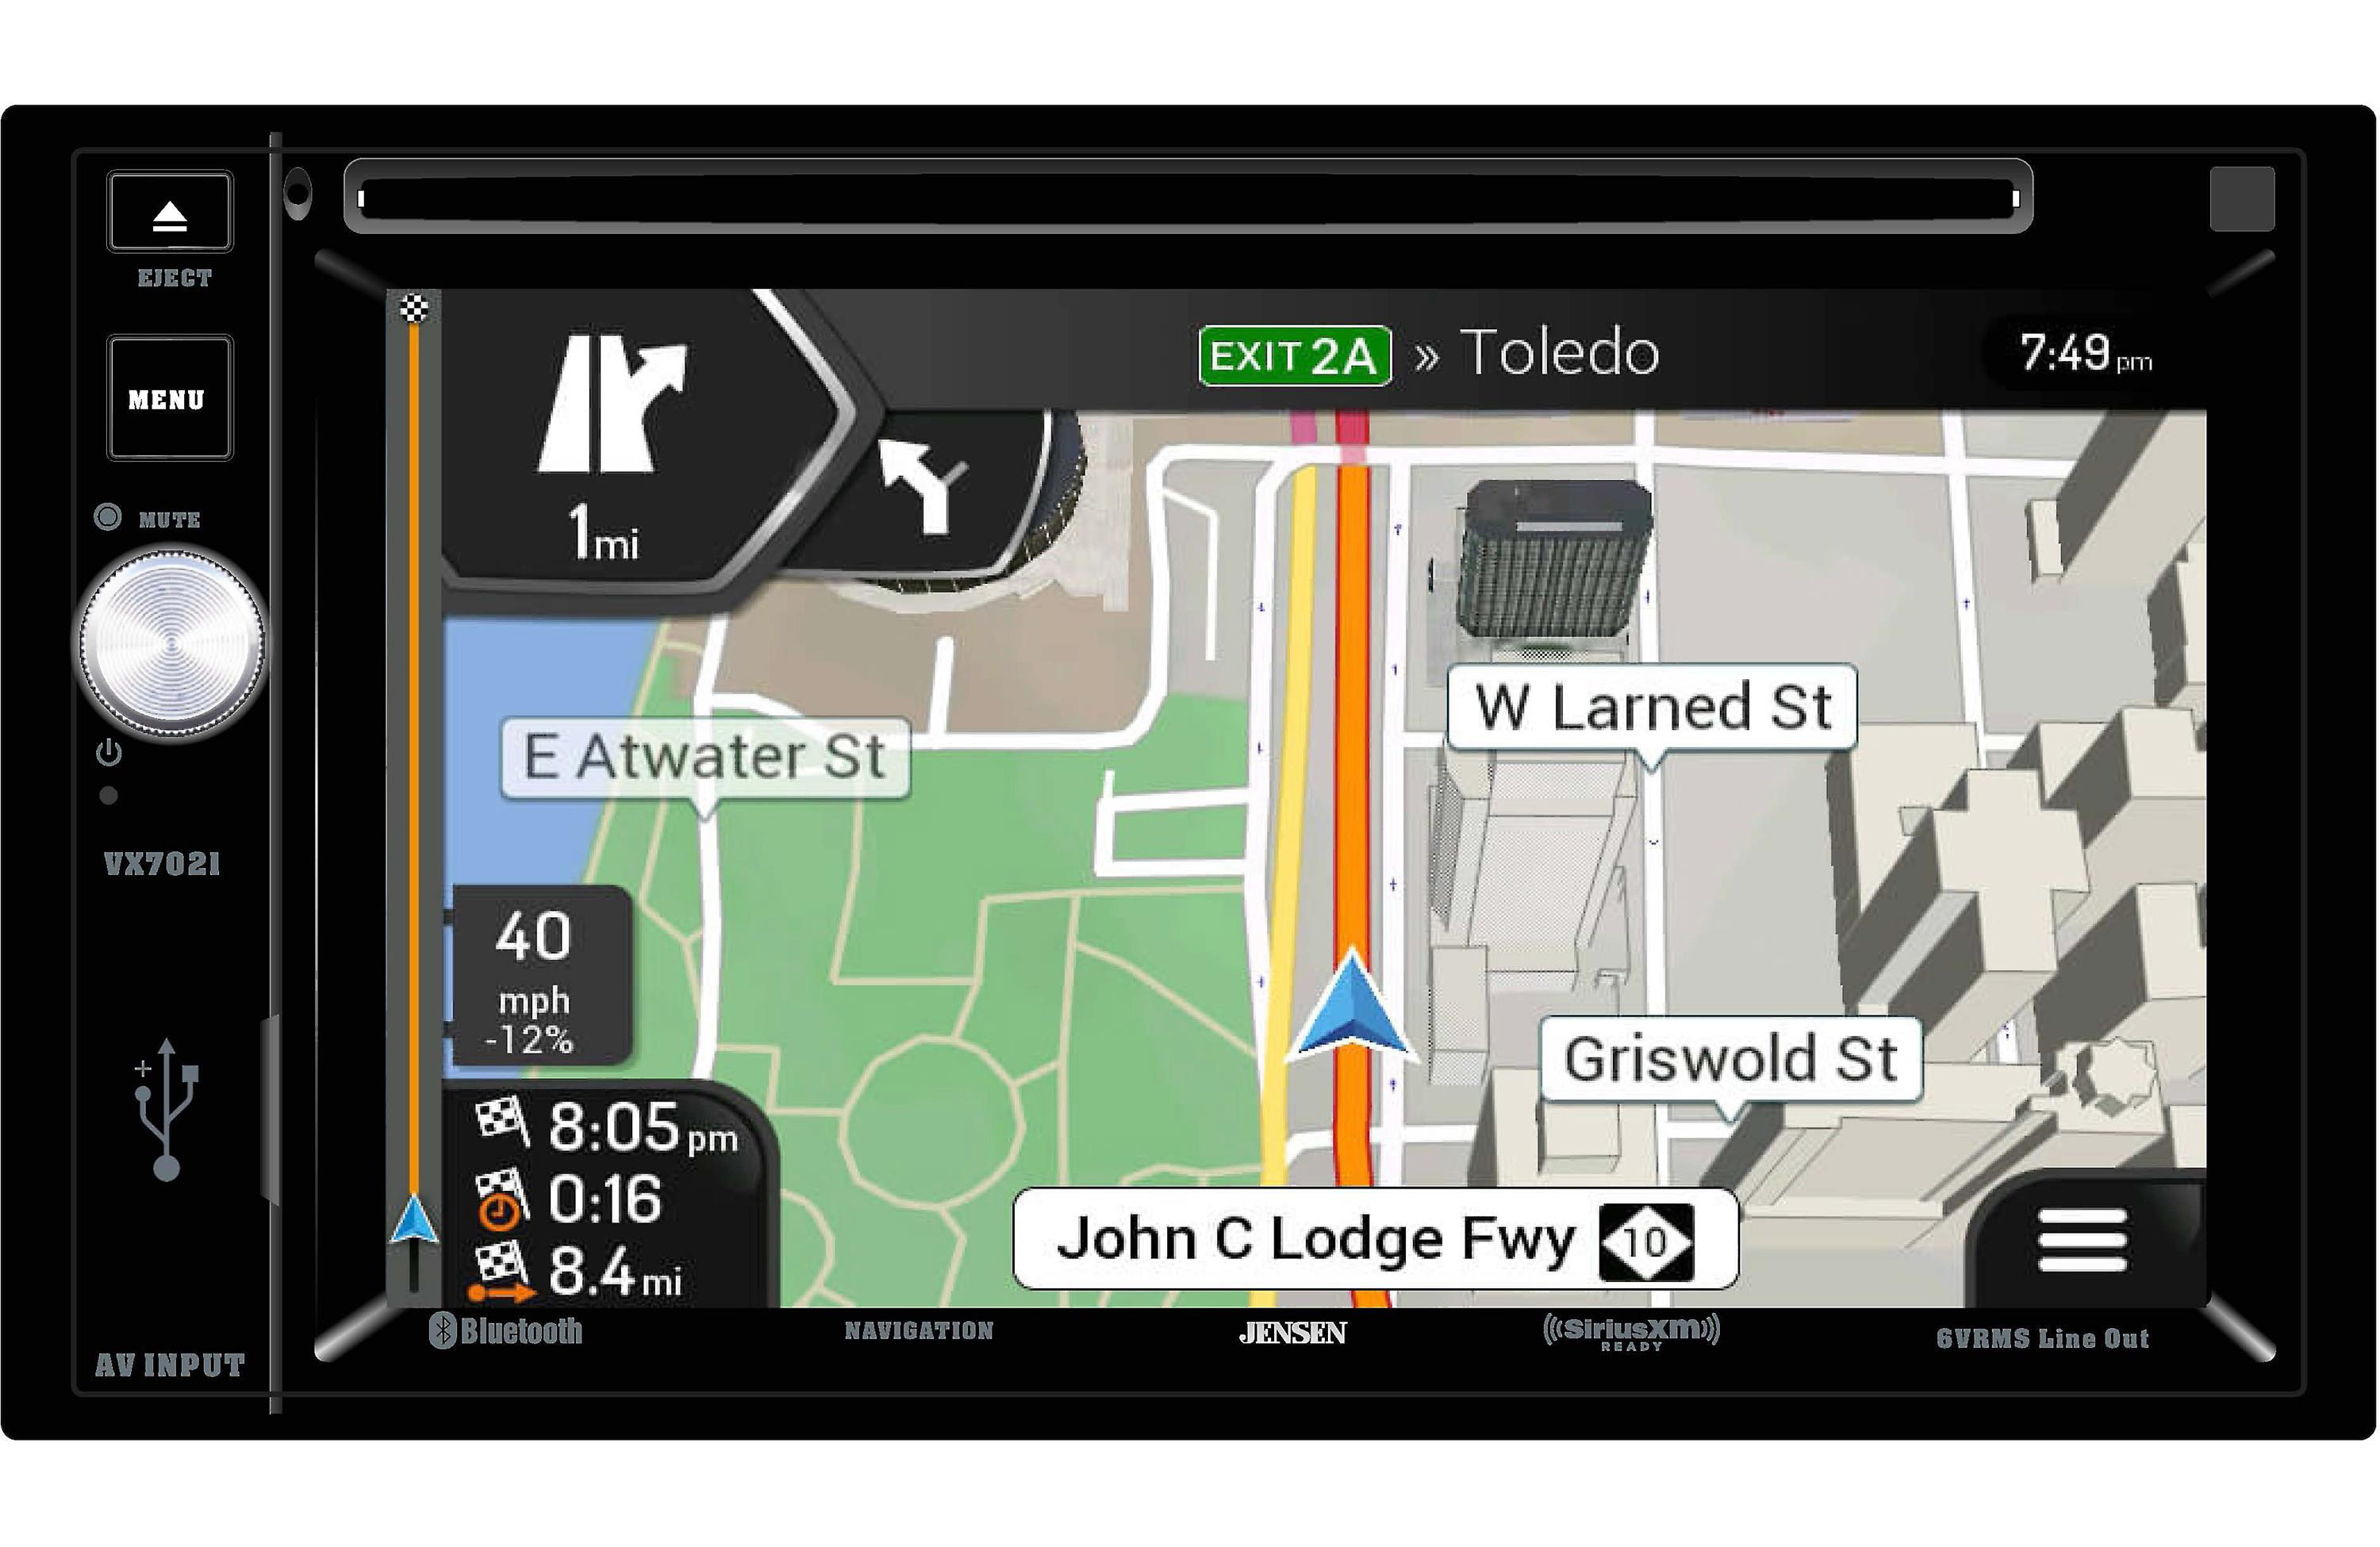 Jensen VX7021 2 DIN Navigation touch-screen by Jensen